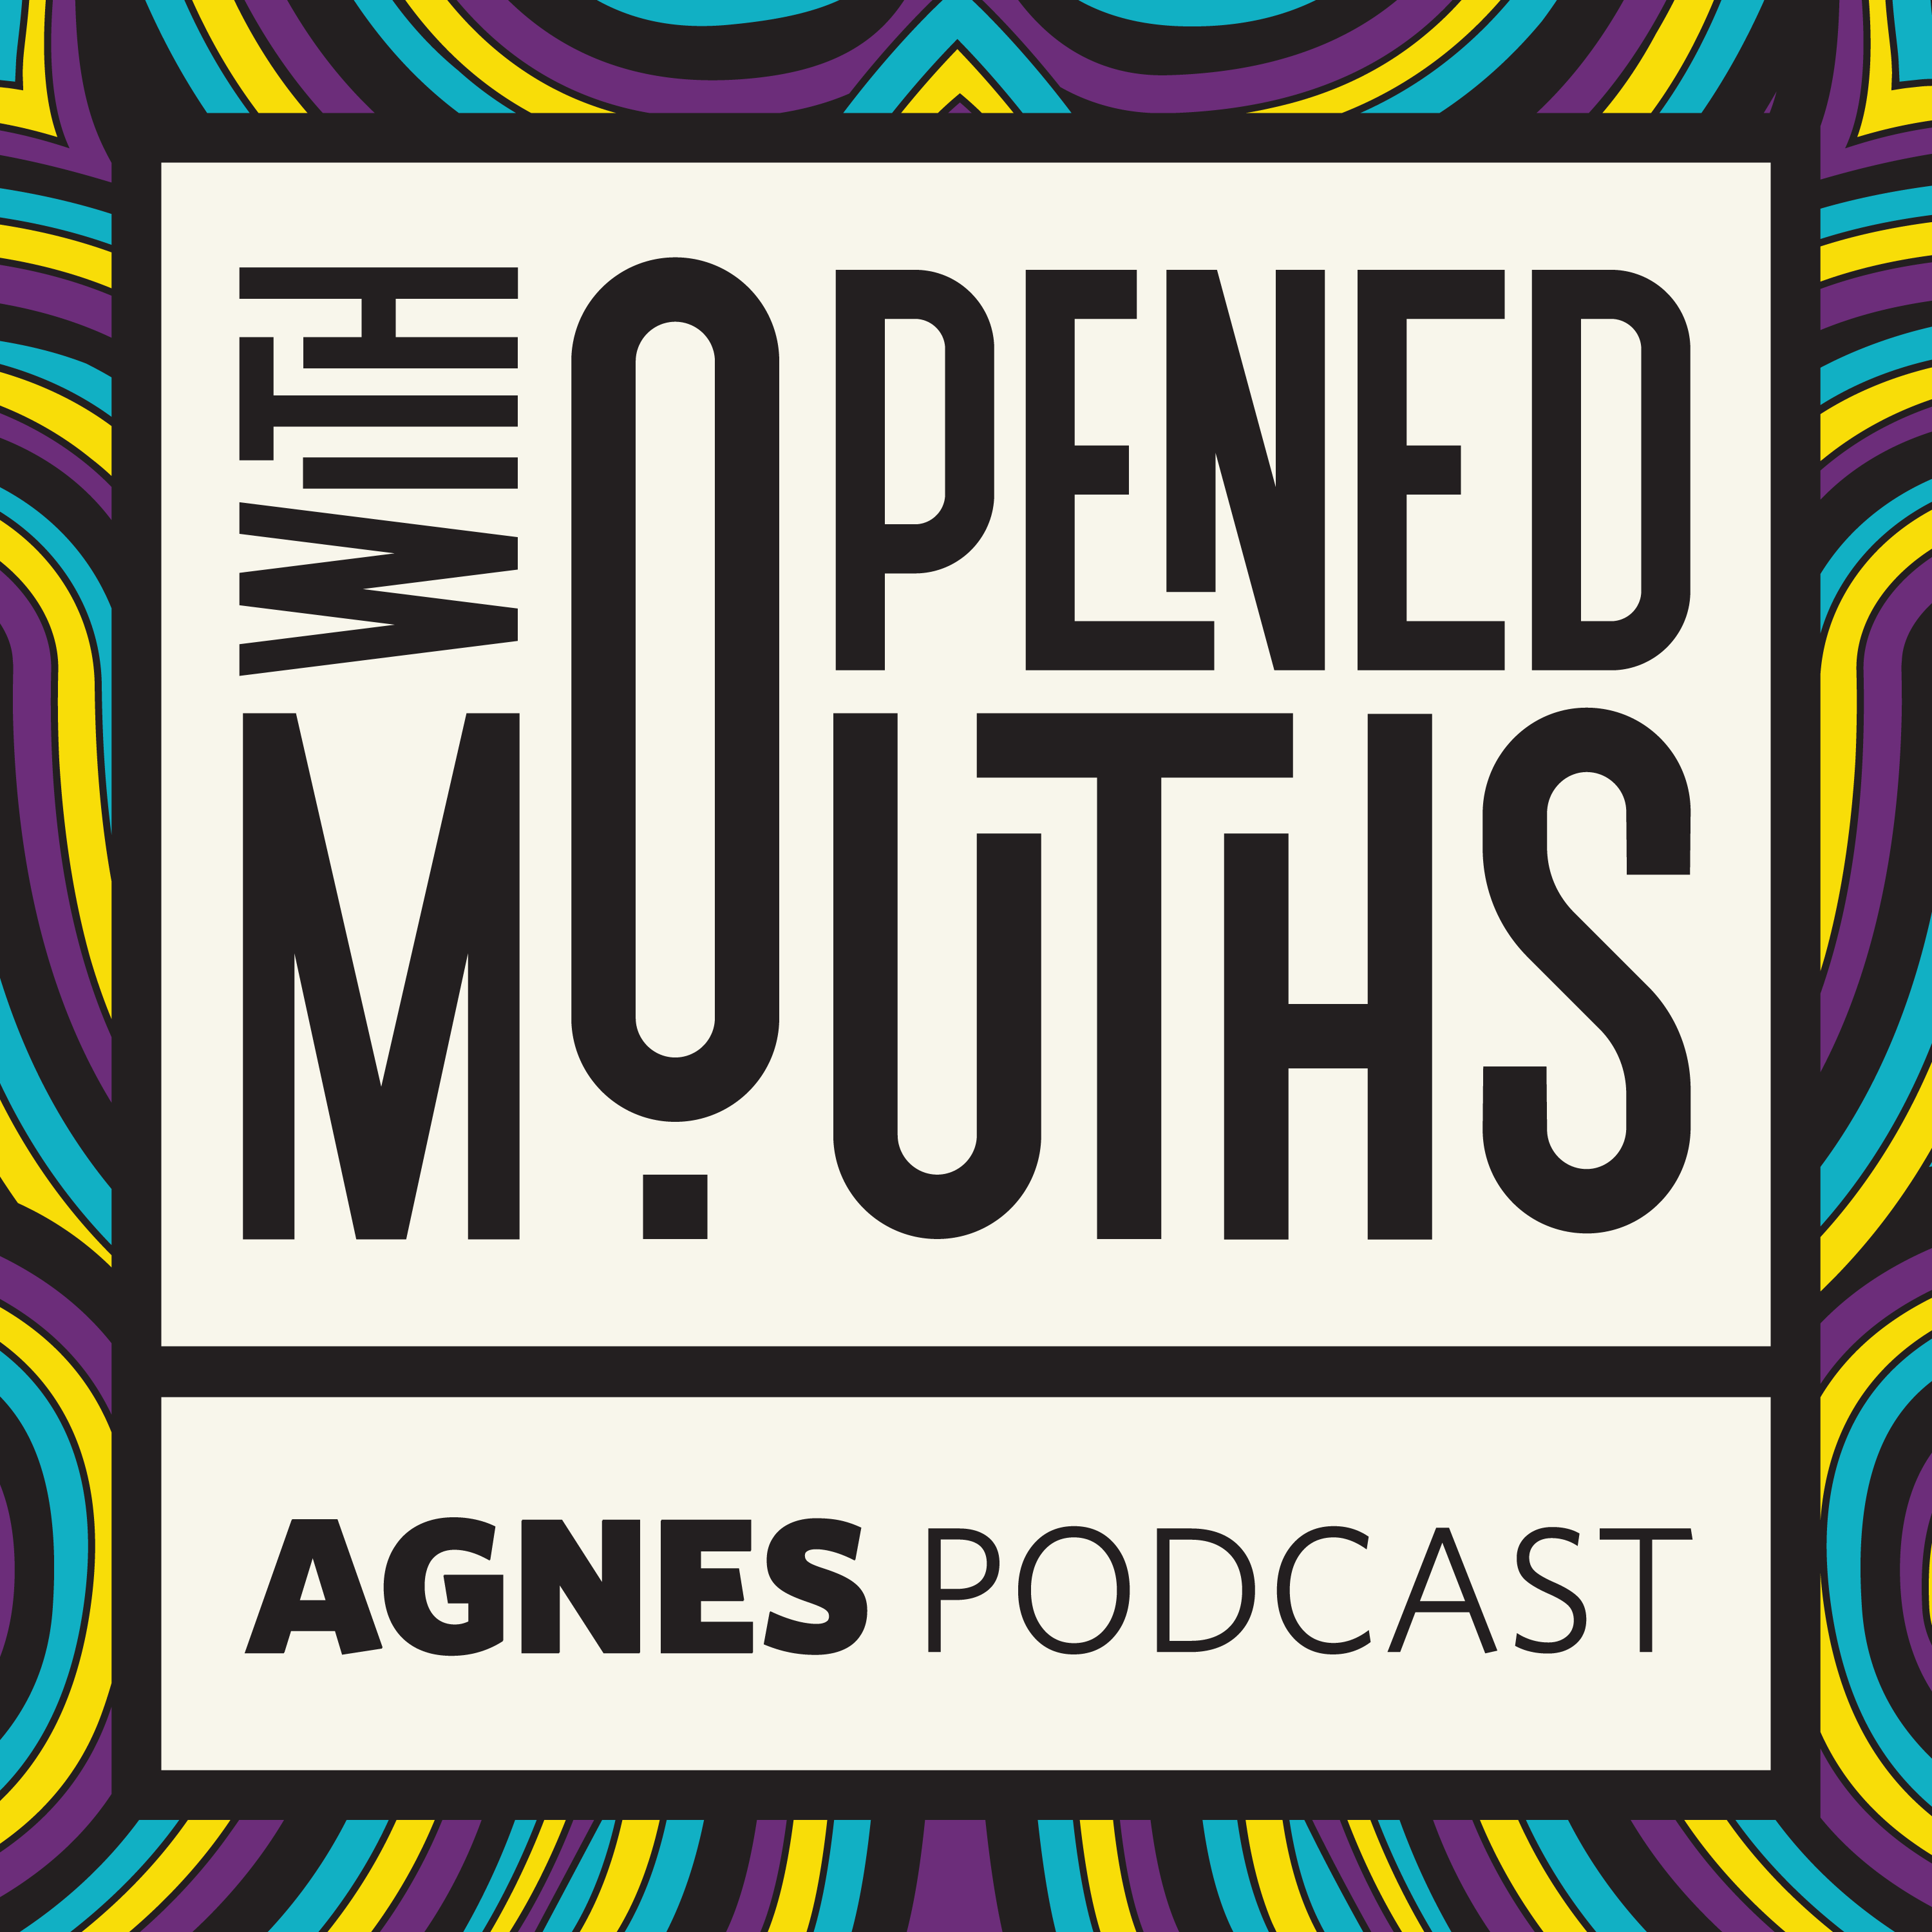 With Opened Mouths: The Podcast - CFRC Podcast Network